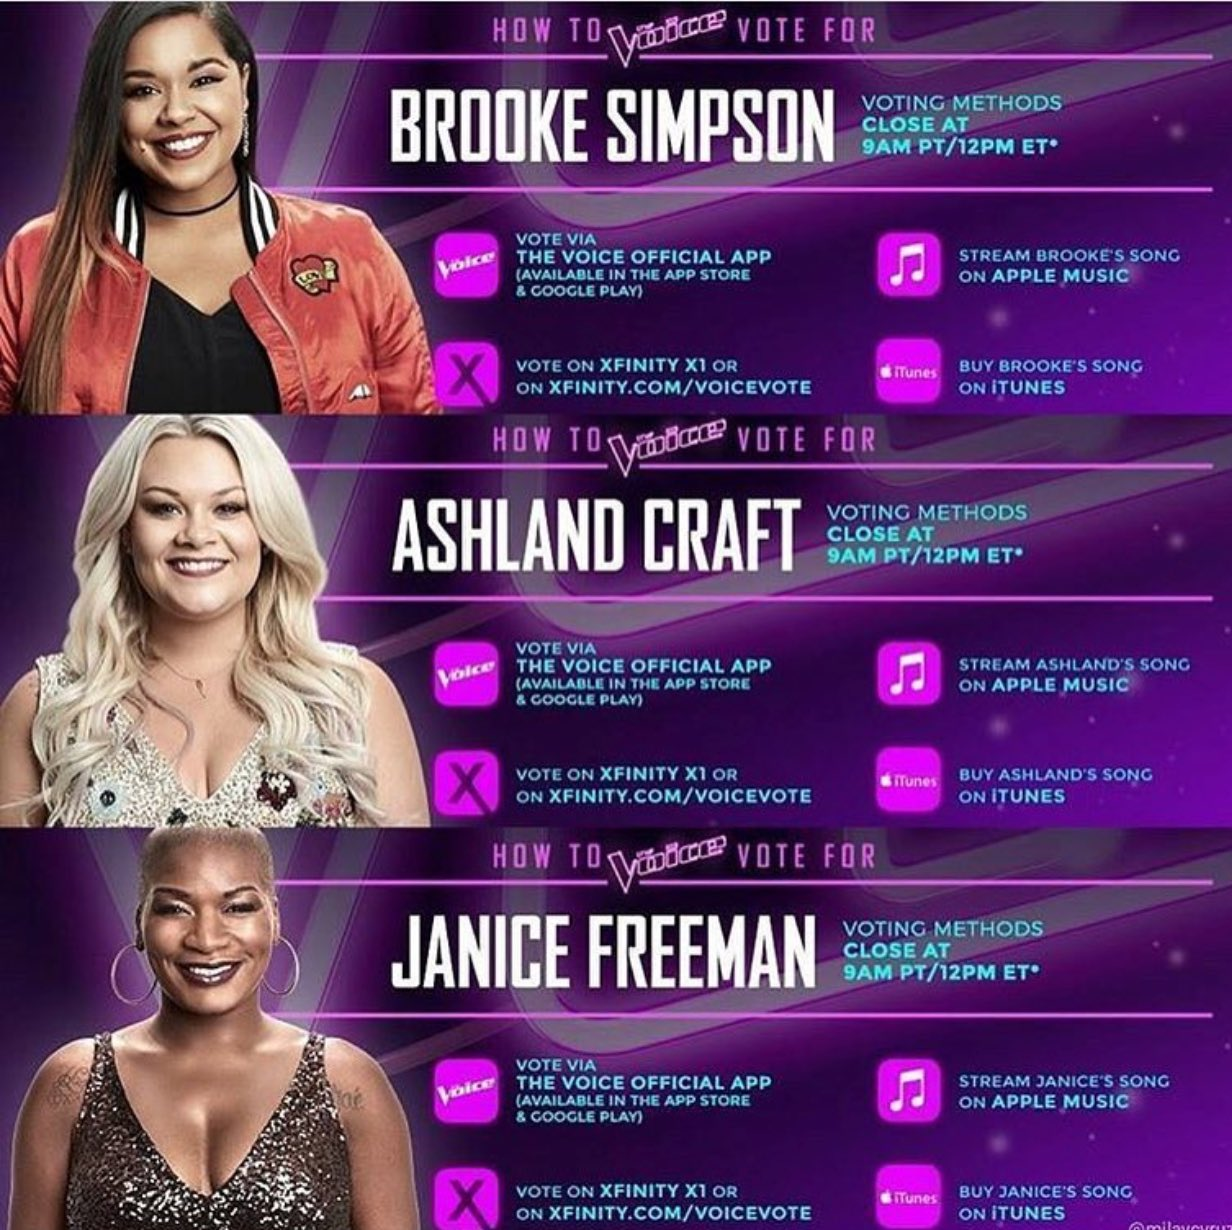 Don't forget to vote for #TeamMiley @janice_freeman @ashlandcraft @brookesimpson https://t.co/2rCxZvGRzd